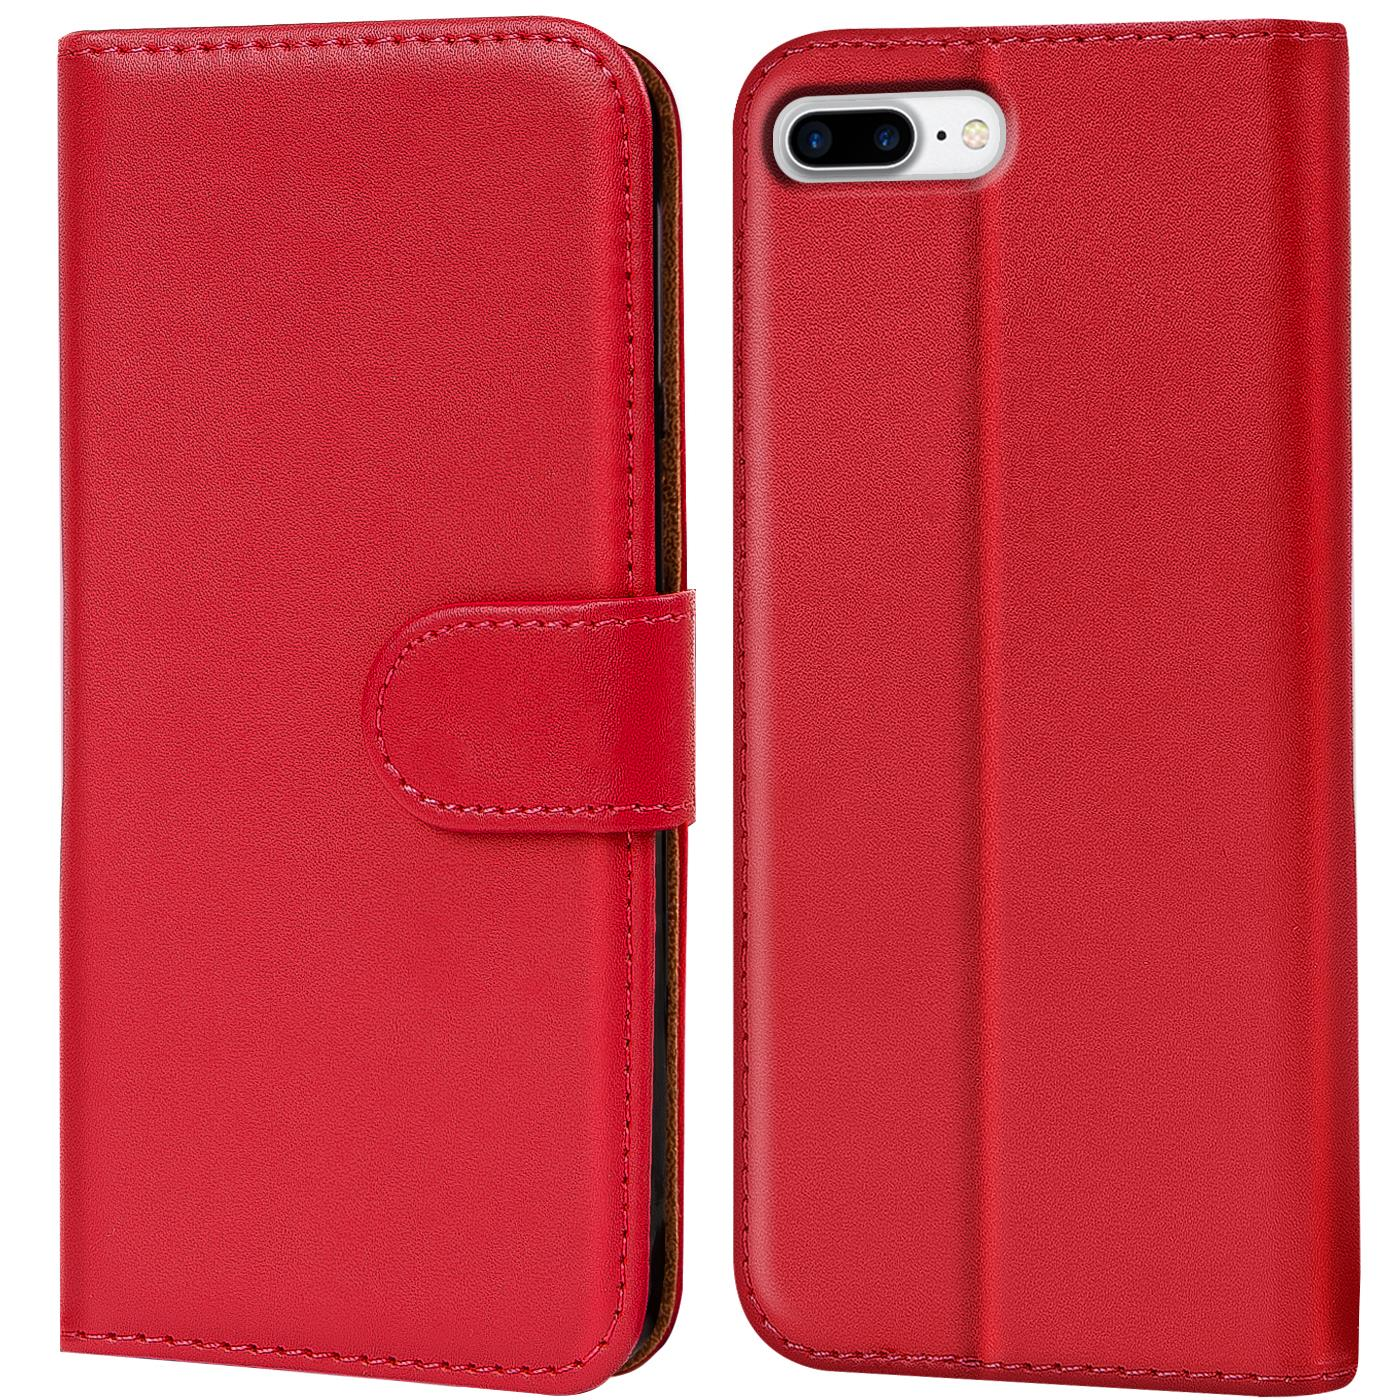 Book Case Apple iPhone 7 Plus 5,5 Hülle Klapphülle Handy Tasche Flip Cover Rot - Wittmund, Niedersachsen, Deutschland - Book Case Apple iPhone 7 Plus 5,5 Hülle Klapphülle Handy Tasche Flip Cover Rot - Wittmund, Niedersachsen, Deutschland